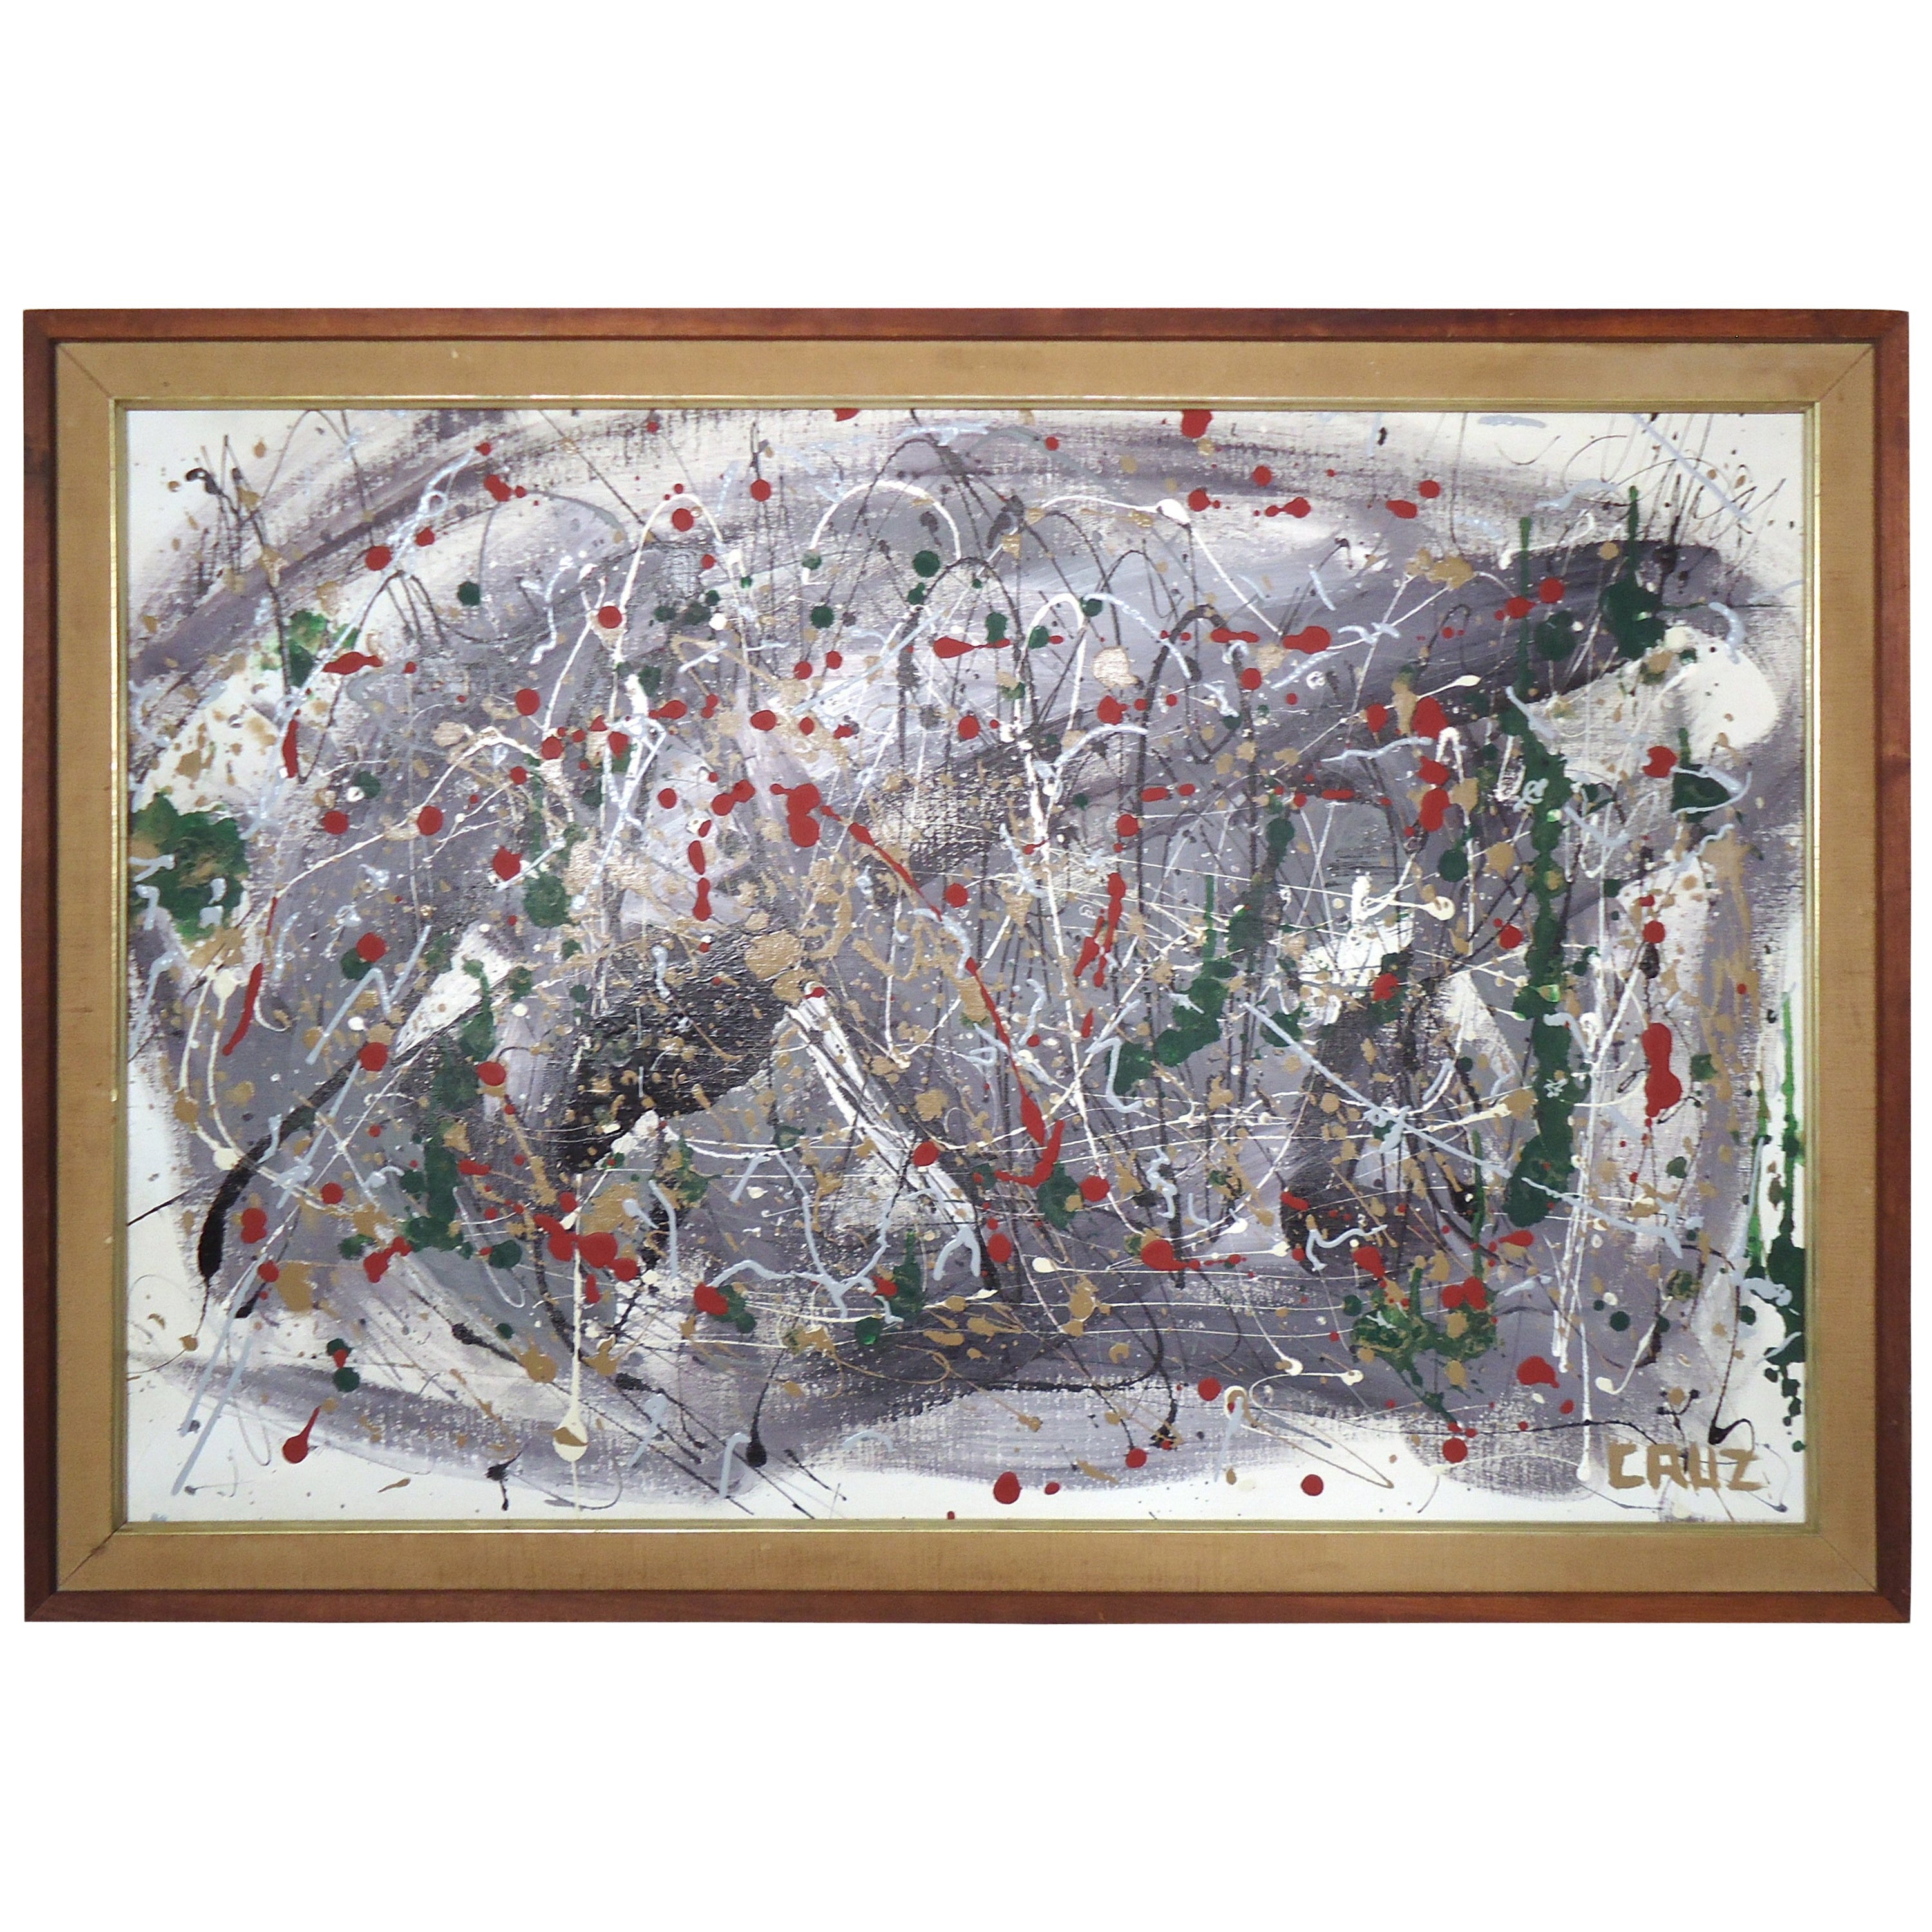 Abstract Splatter Painting Signed by Artist